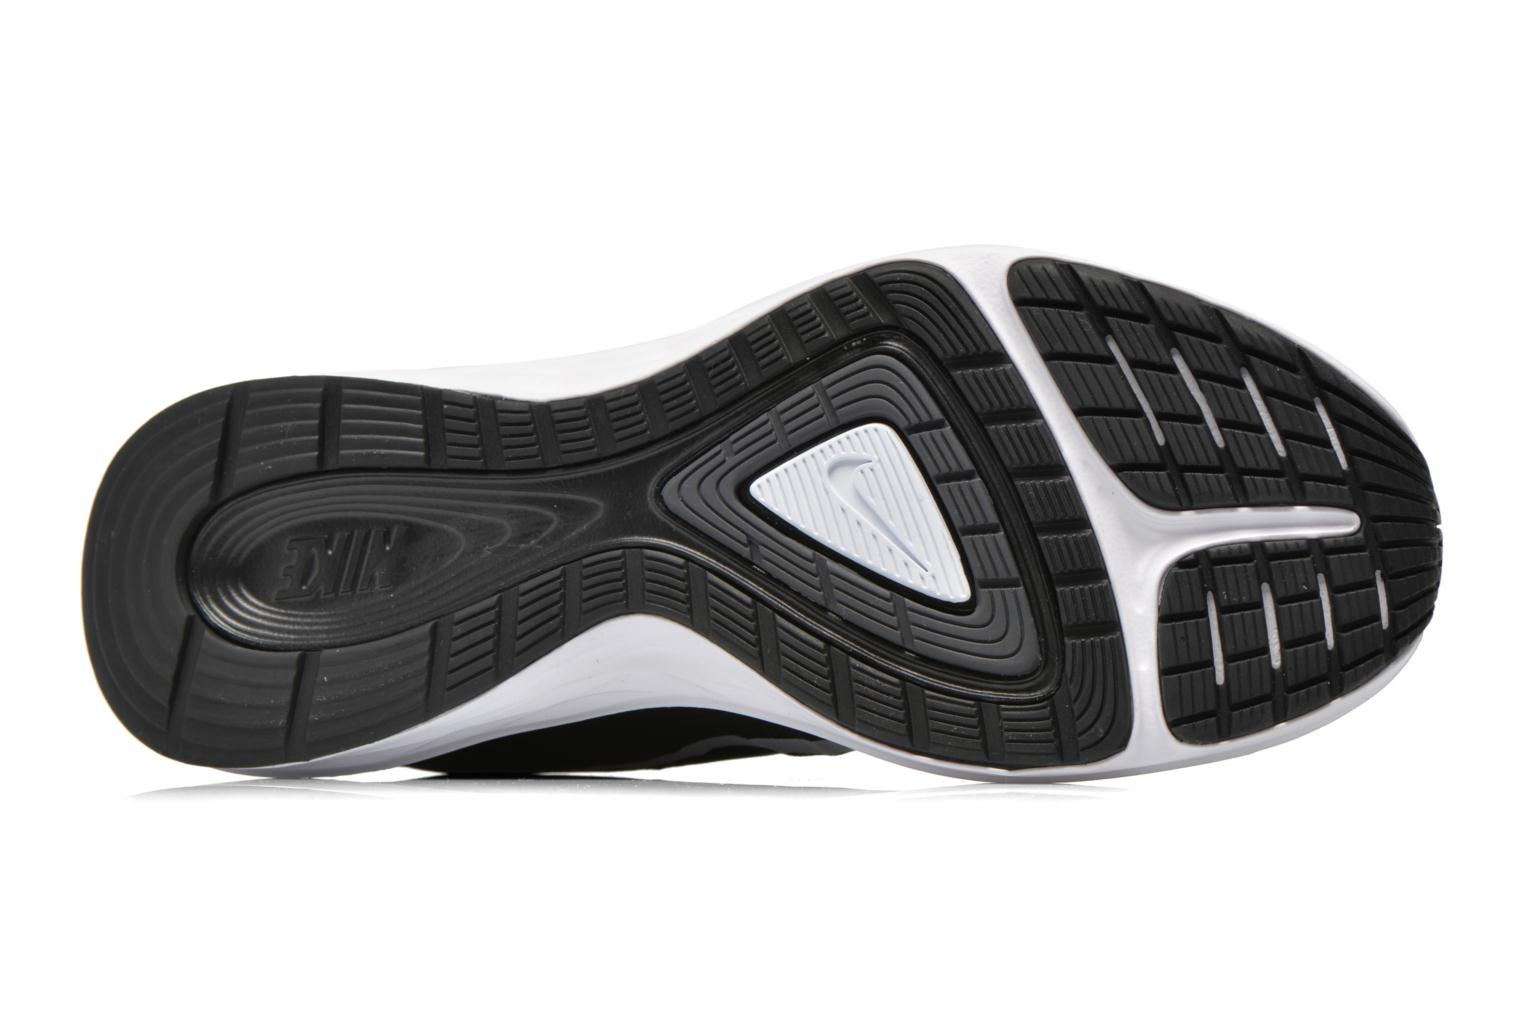 Nike Dual Fusion X 2 BLACK/WHITE-DARK GREY